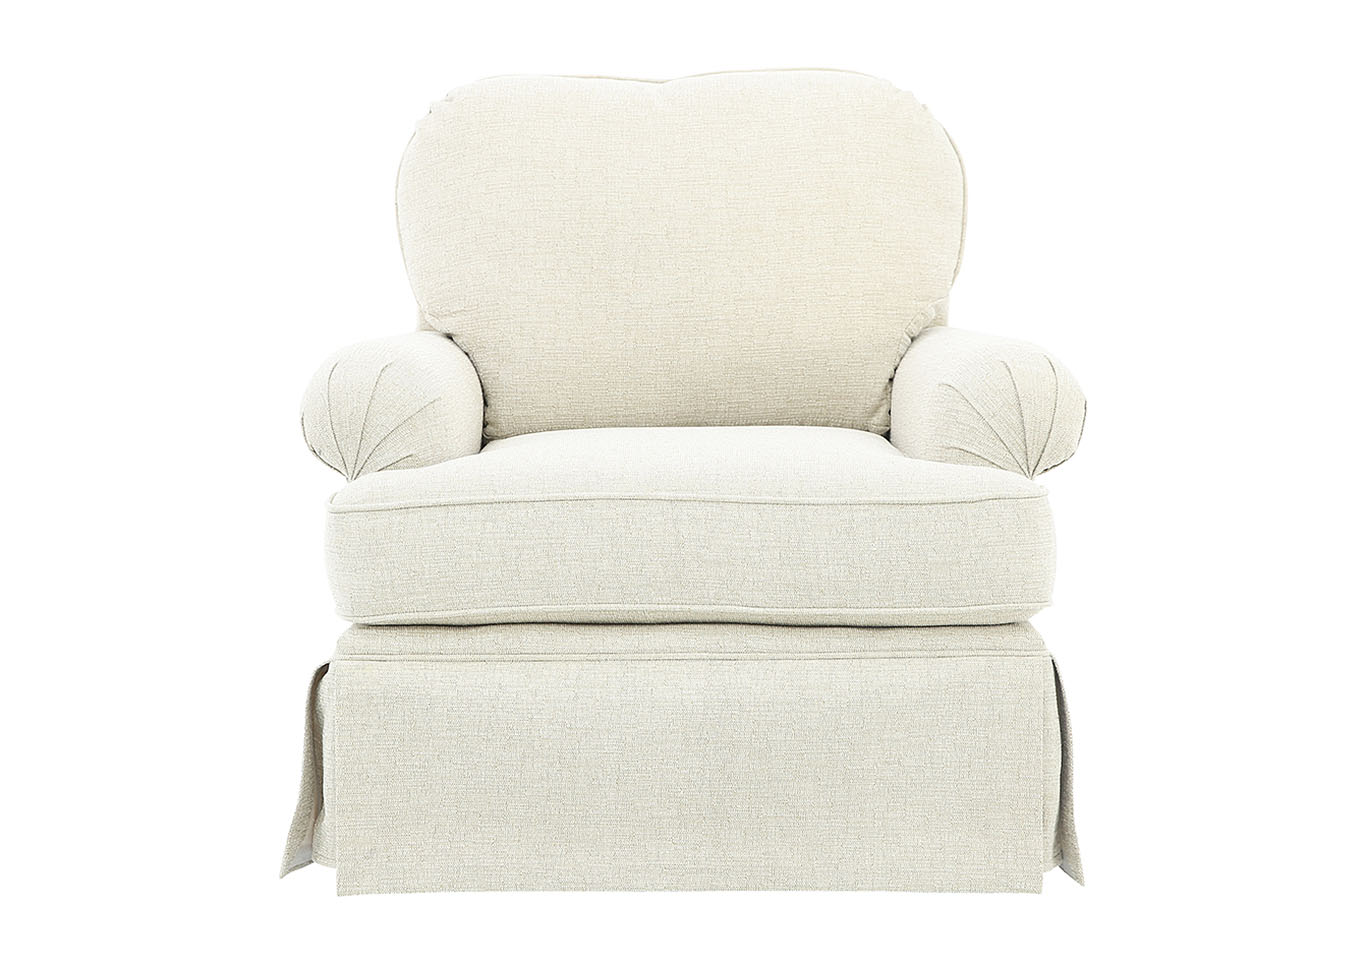 Super Ivan Smith Anna Linen Swivel Glider Caraccident5 Cool Chair Designs And Ideas Caraccident5Info